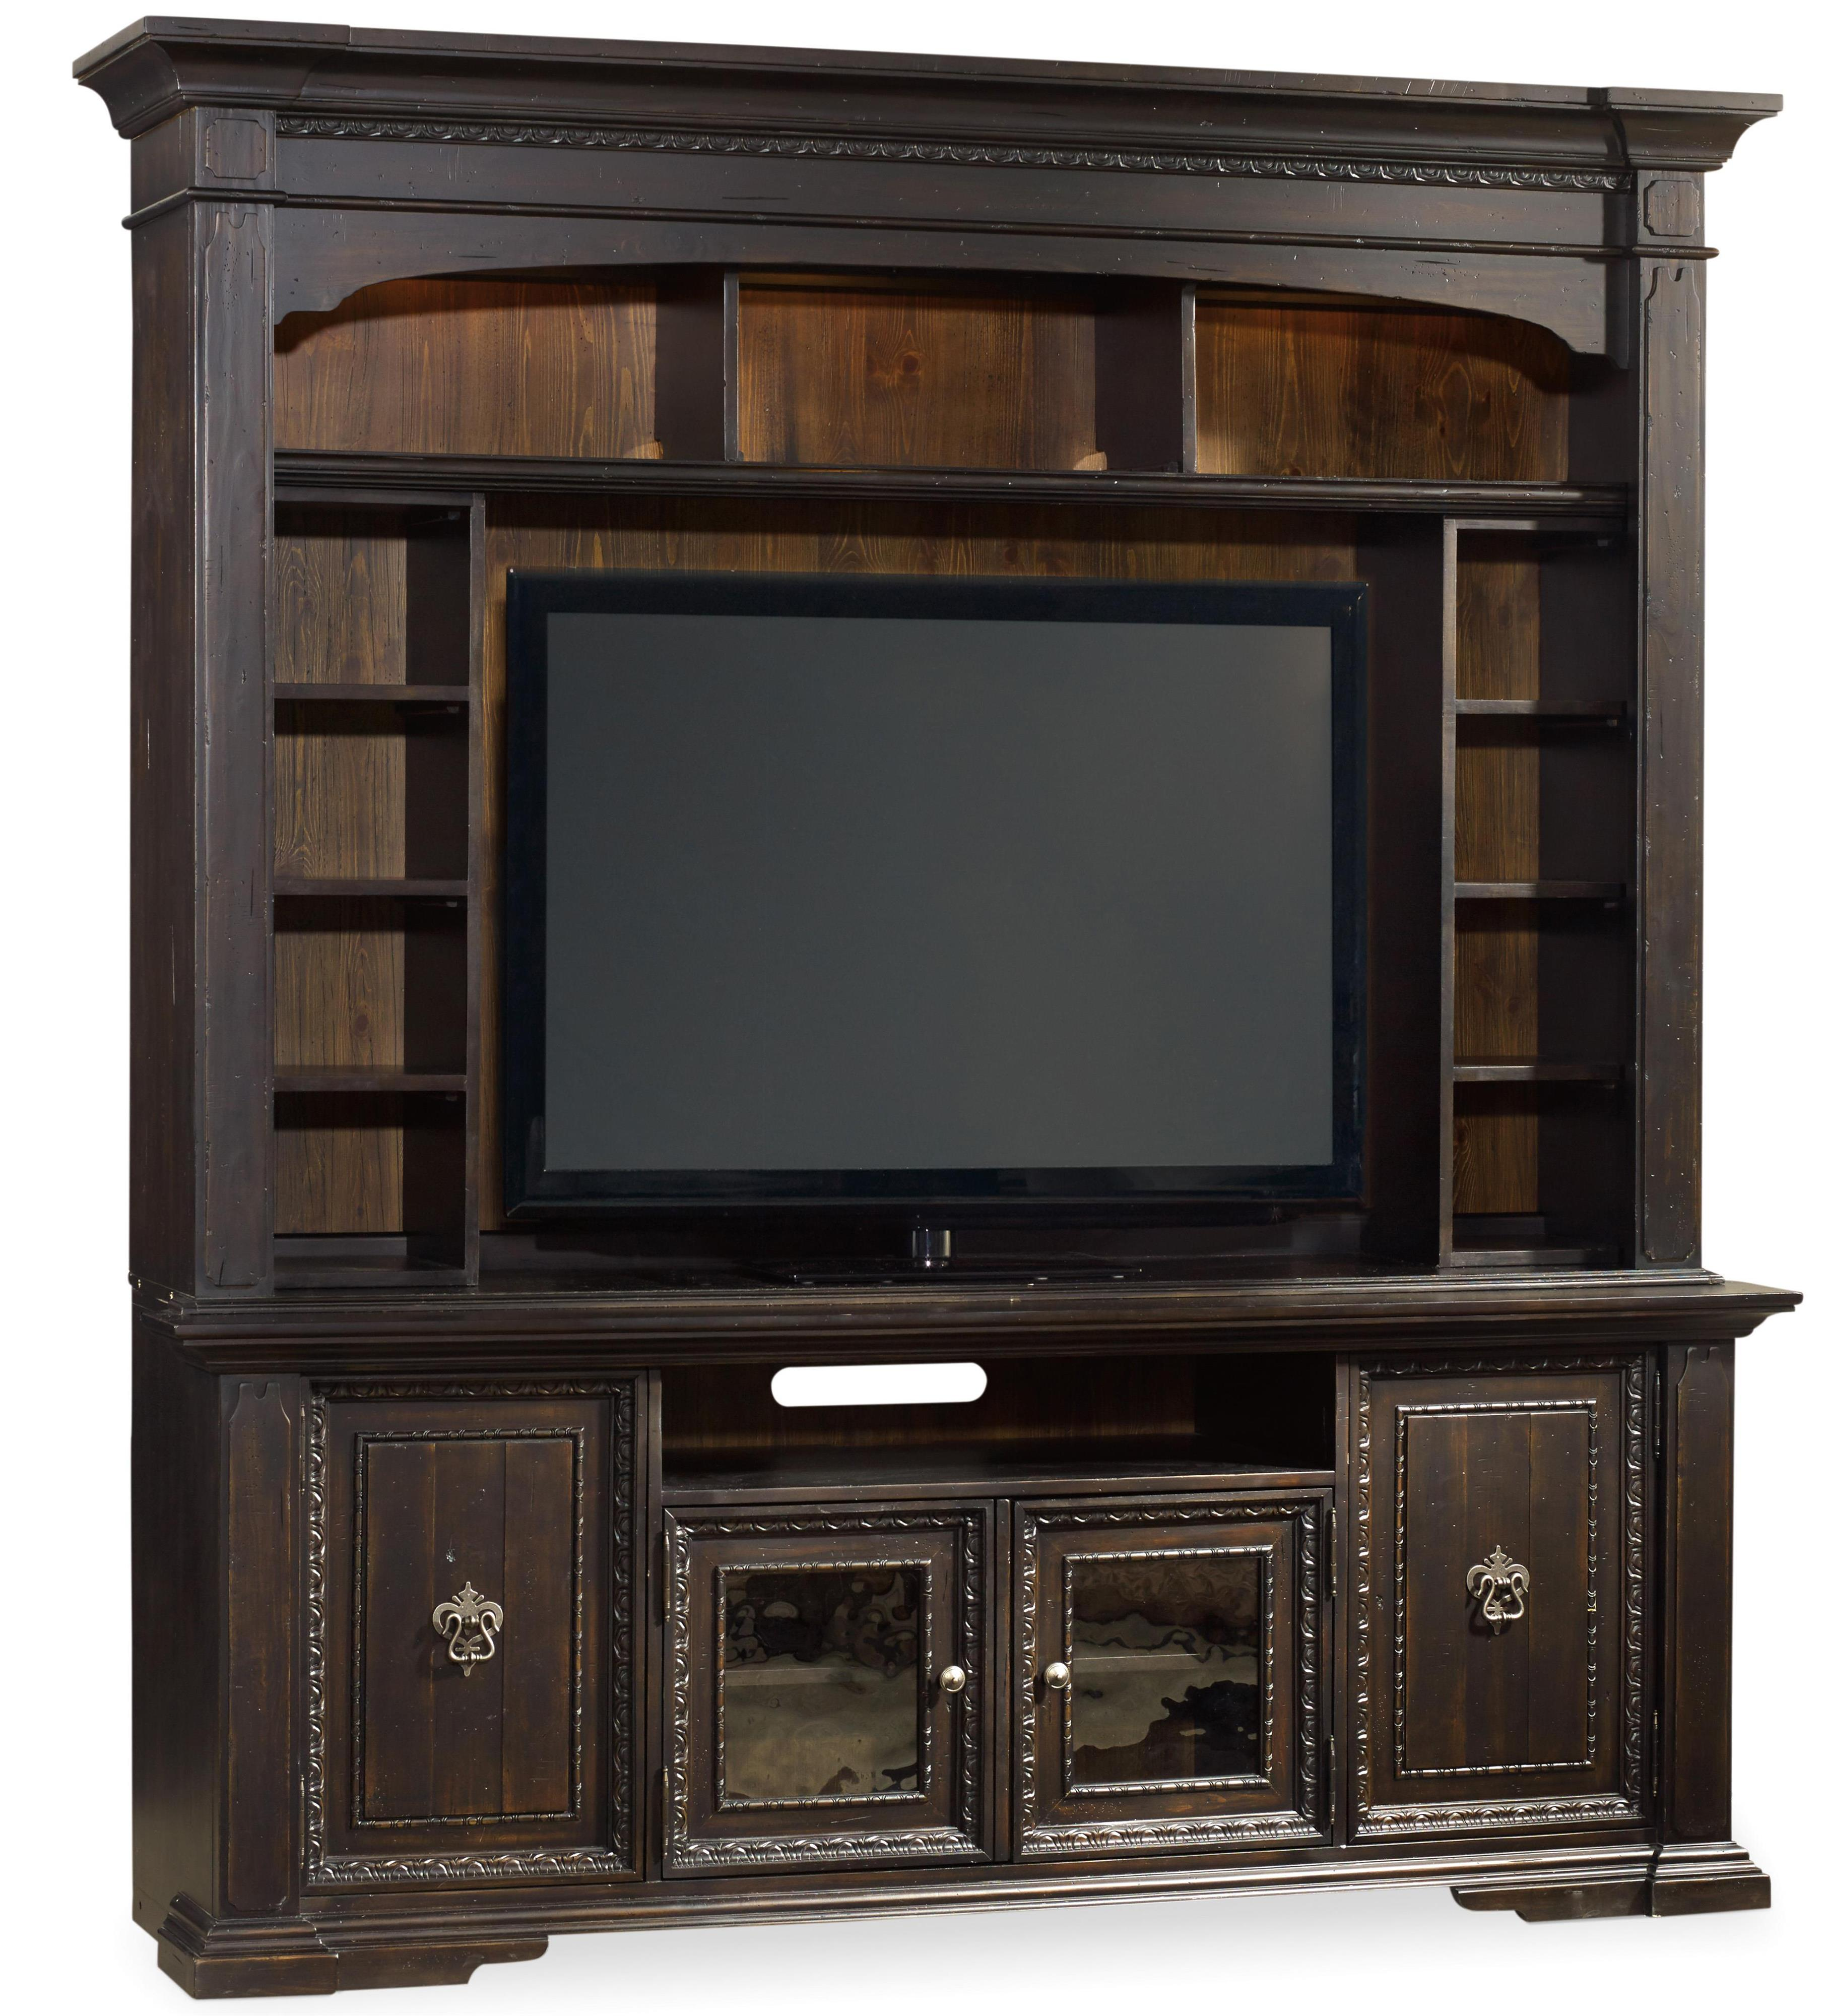 Hooker Furniture Treviso 2 Pc Entertainment Group - Item Number: 5374-70202